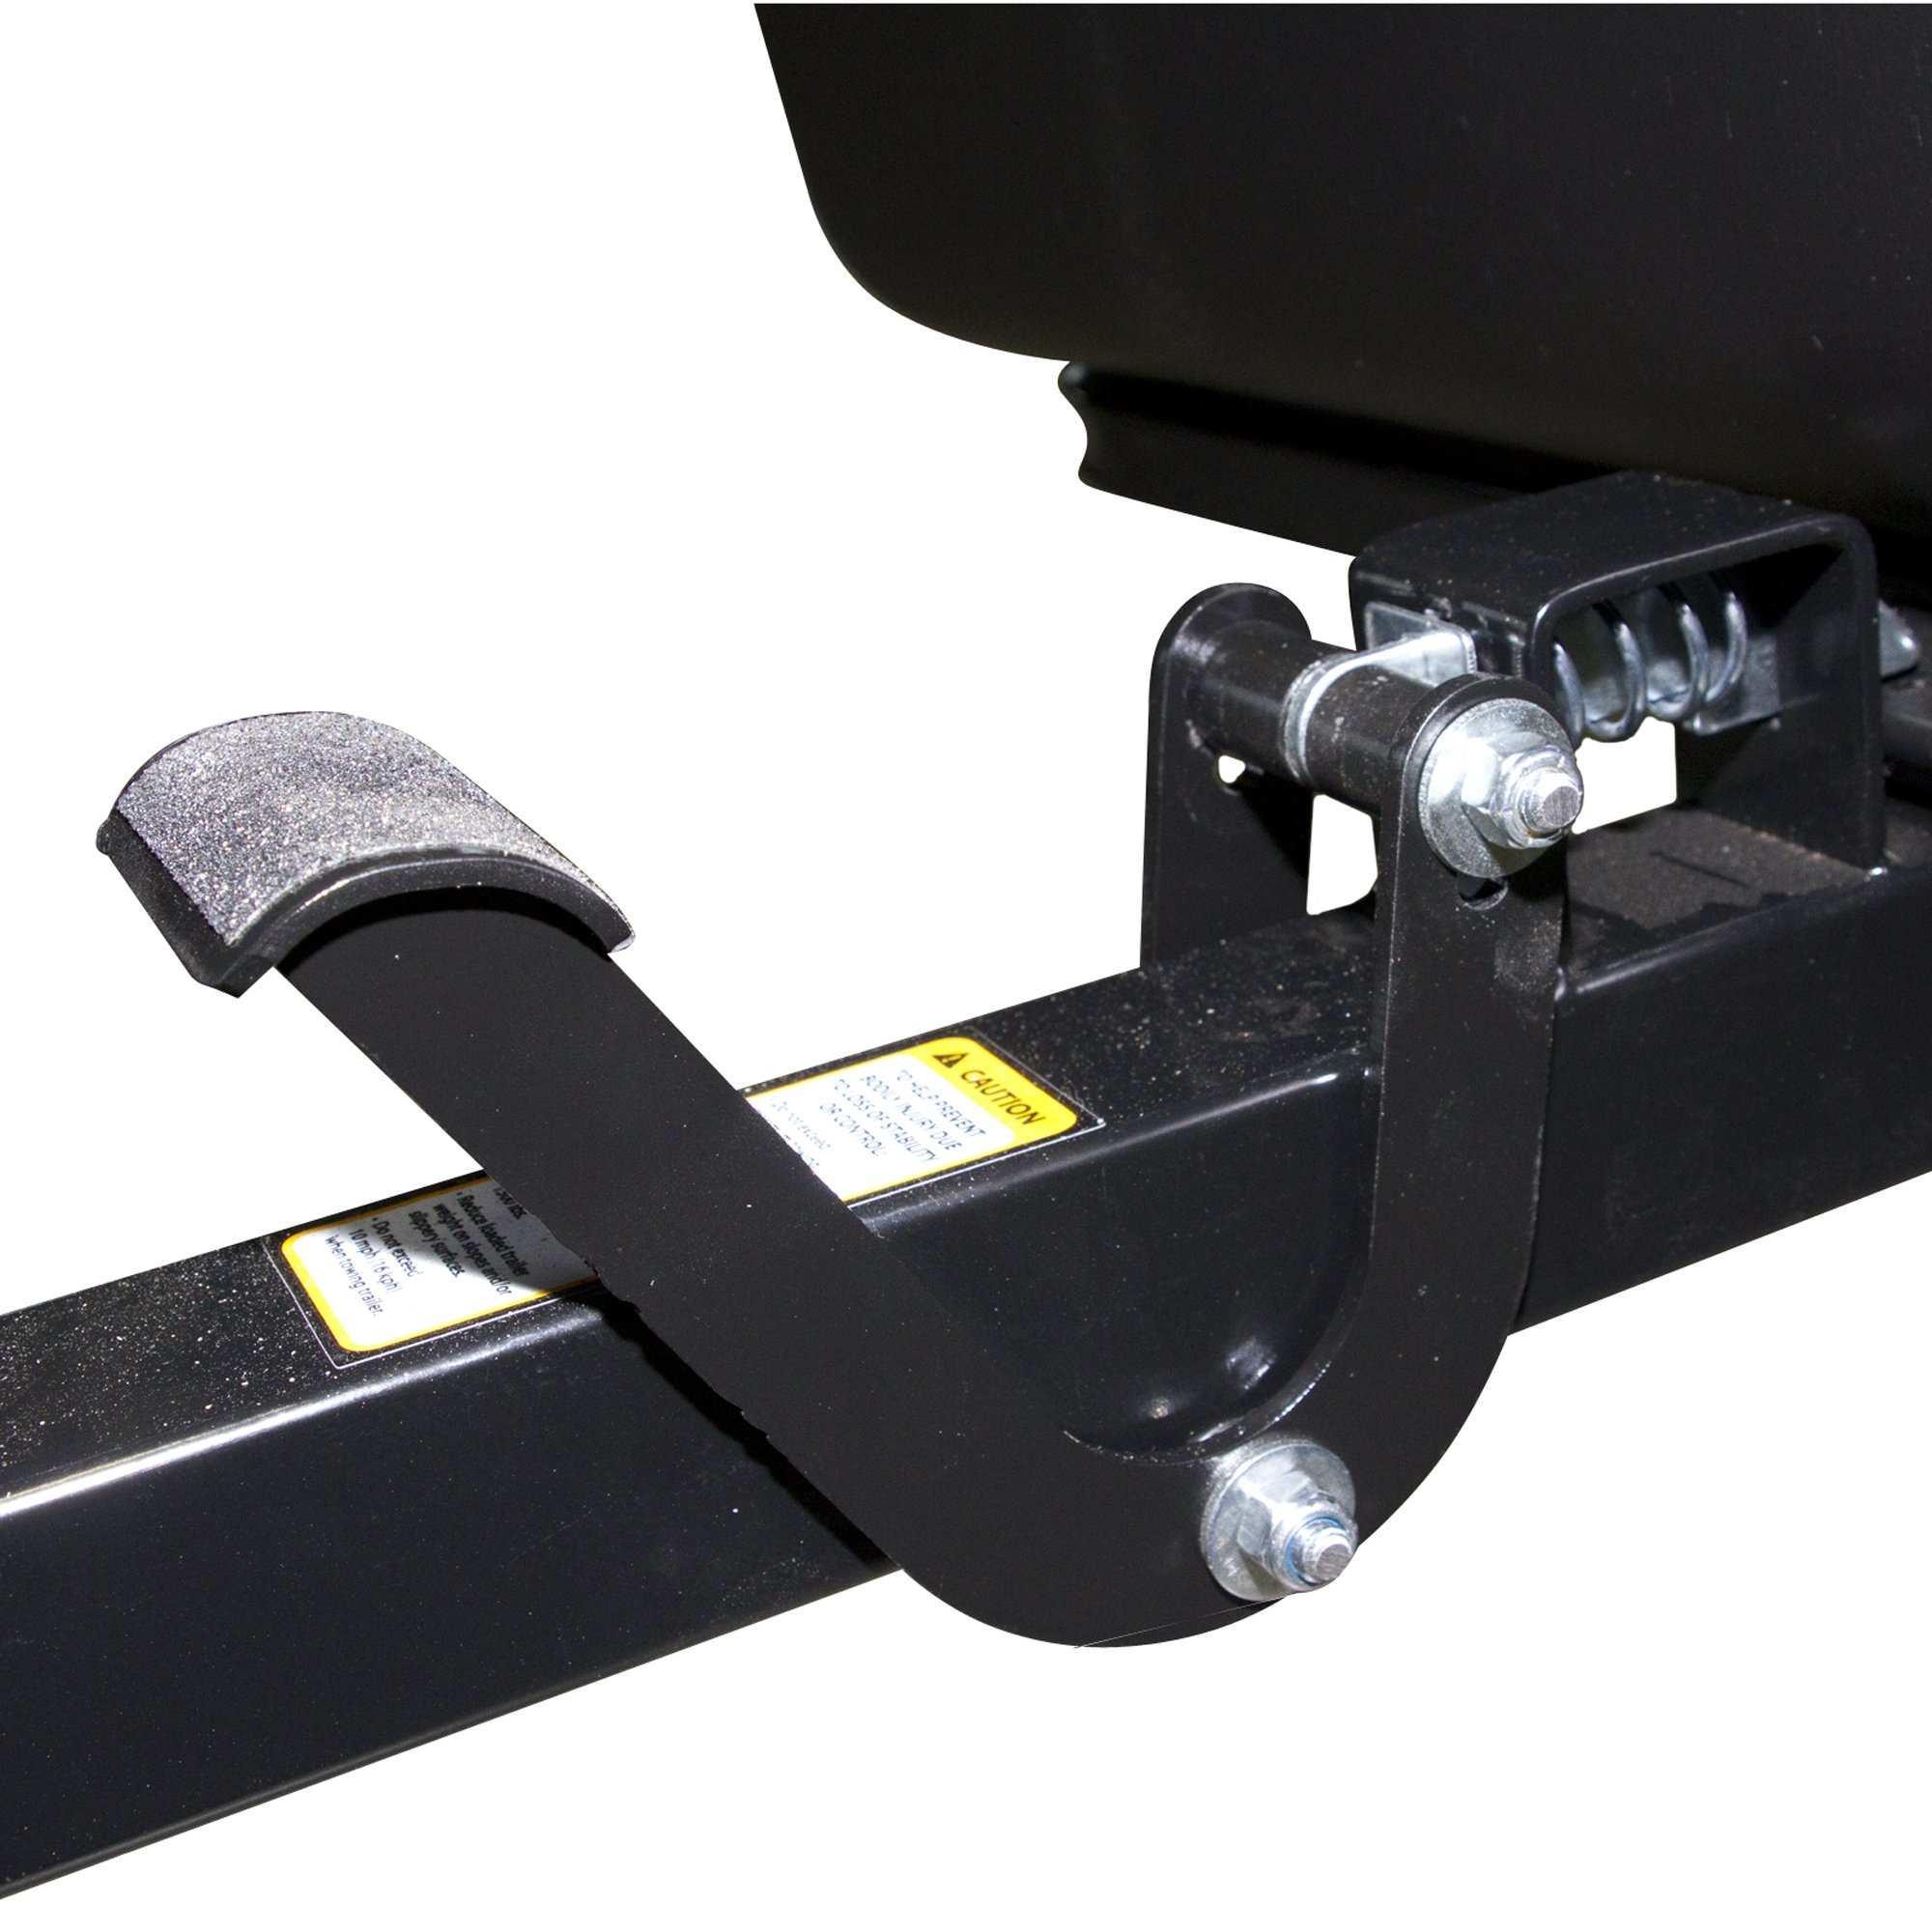 Polar Trailer Foot Pedal Latch Carbon Steel Body Easy to Use Release and Tilt with Feet Easy Install Useful Accessory, Black by Polar Trailer (Image #1)